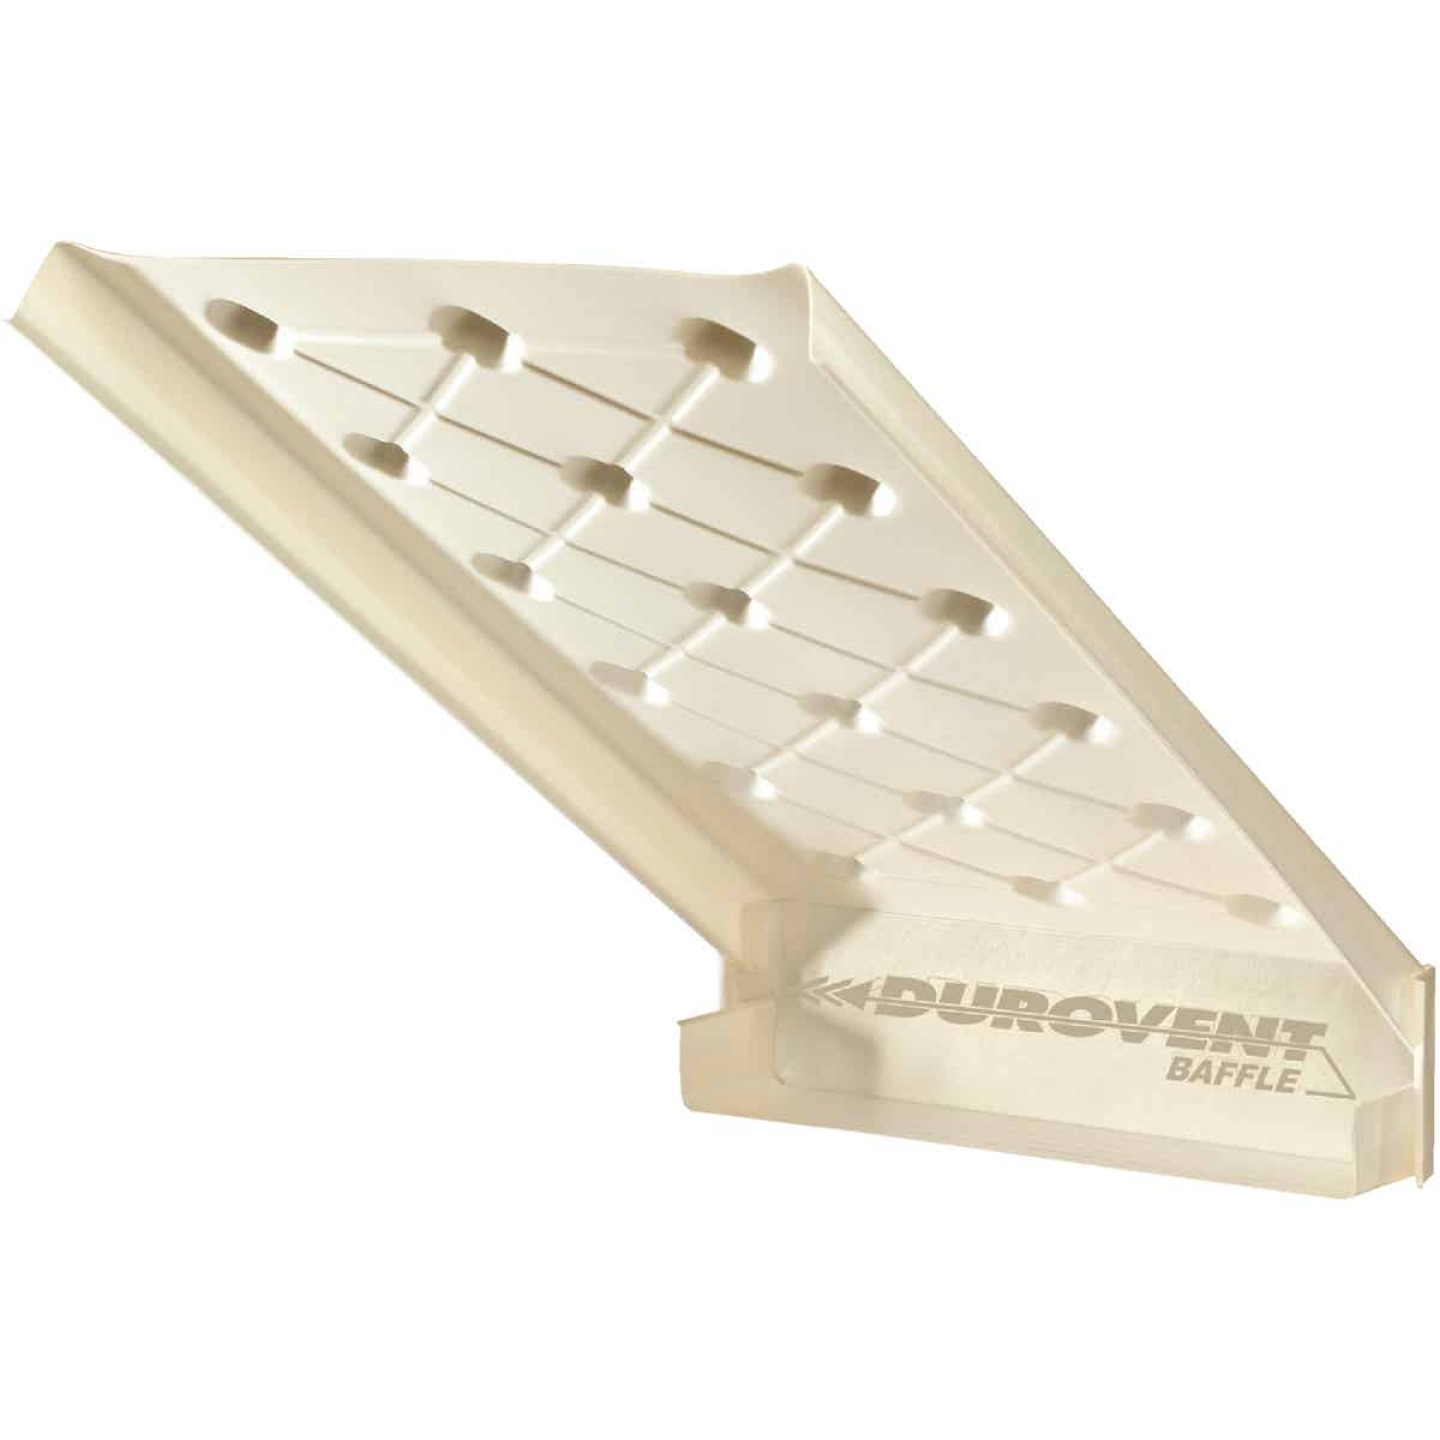 """ADO Durovent Baffle 24"""" x 46"""" x 2"""" Polystyrene DuroVent Attic Rafter Vent Image 1"""